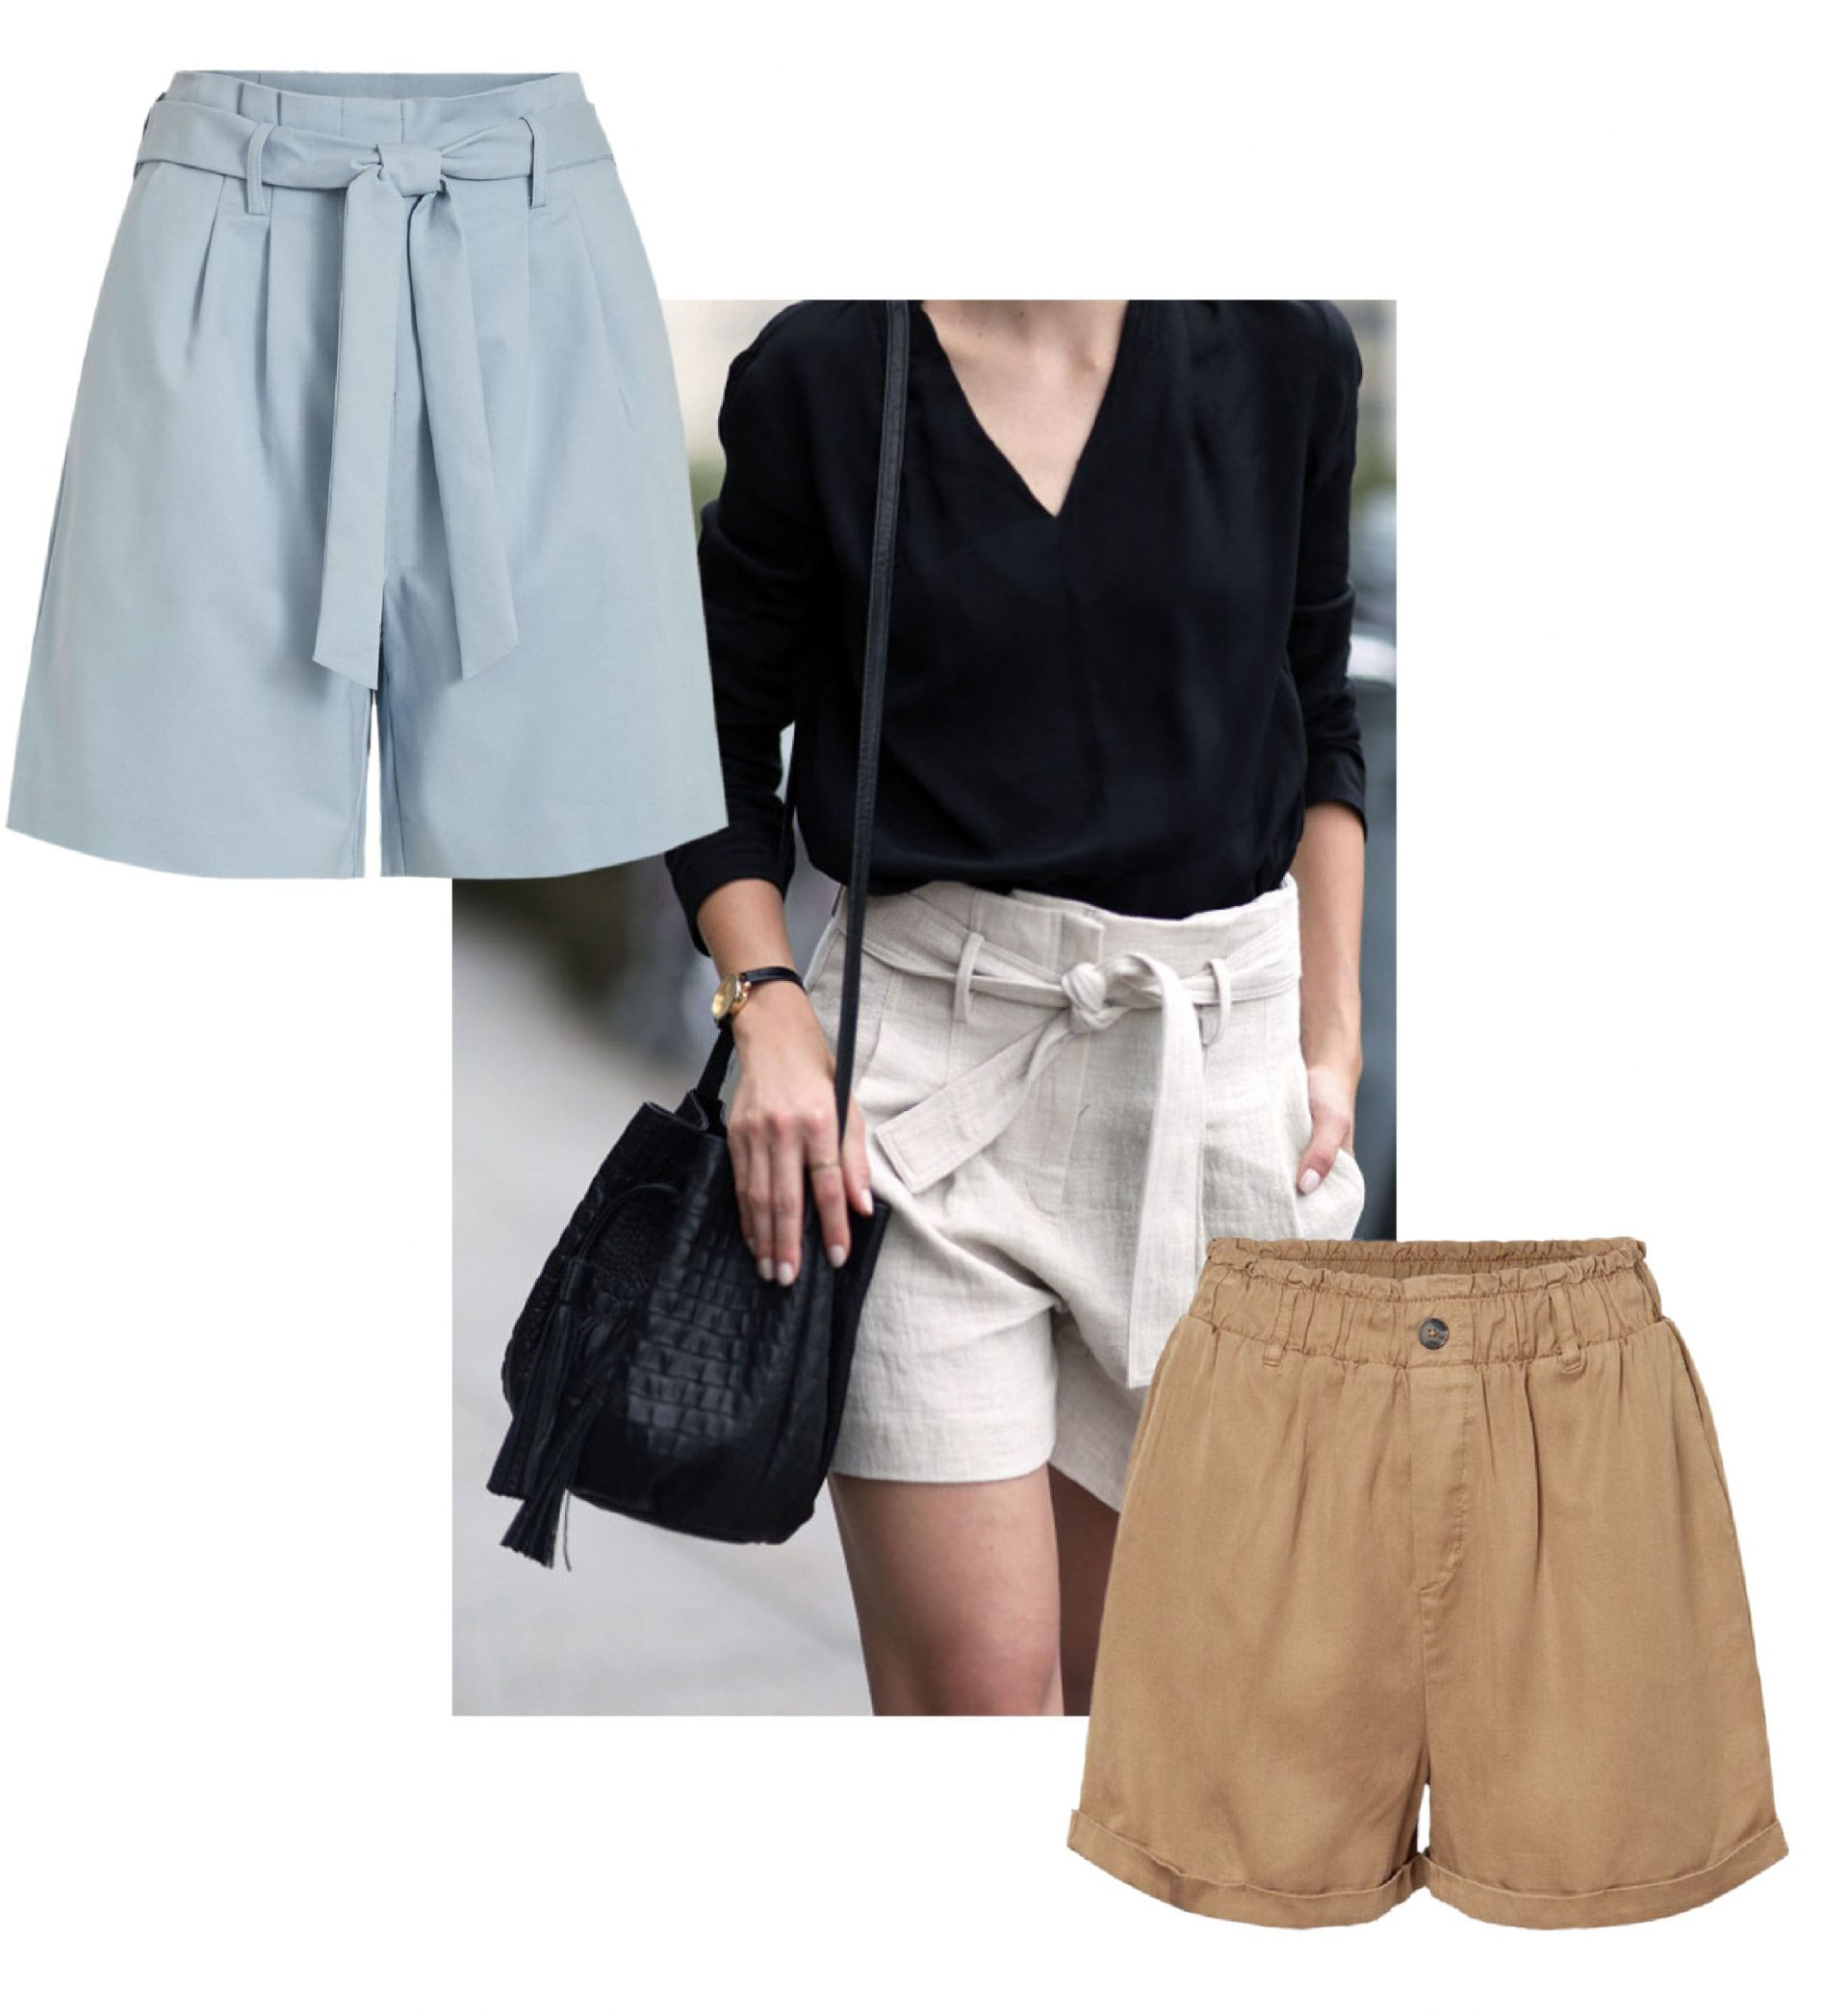 paperbag shorts for summer looks